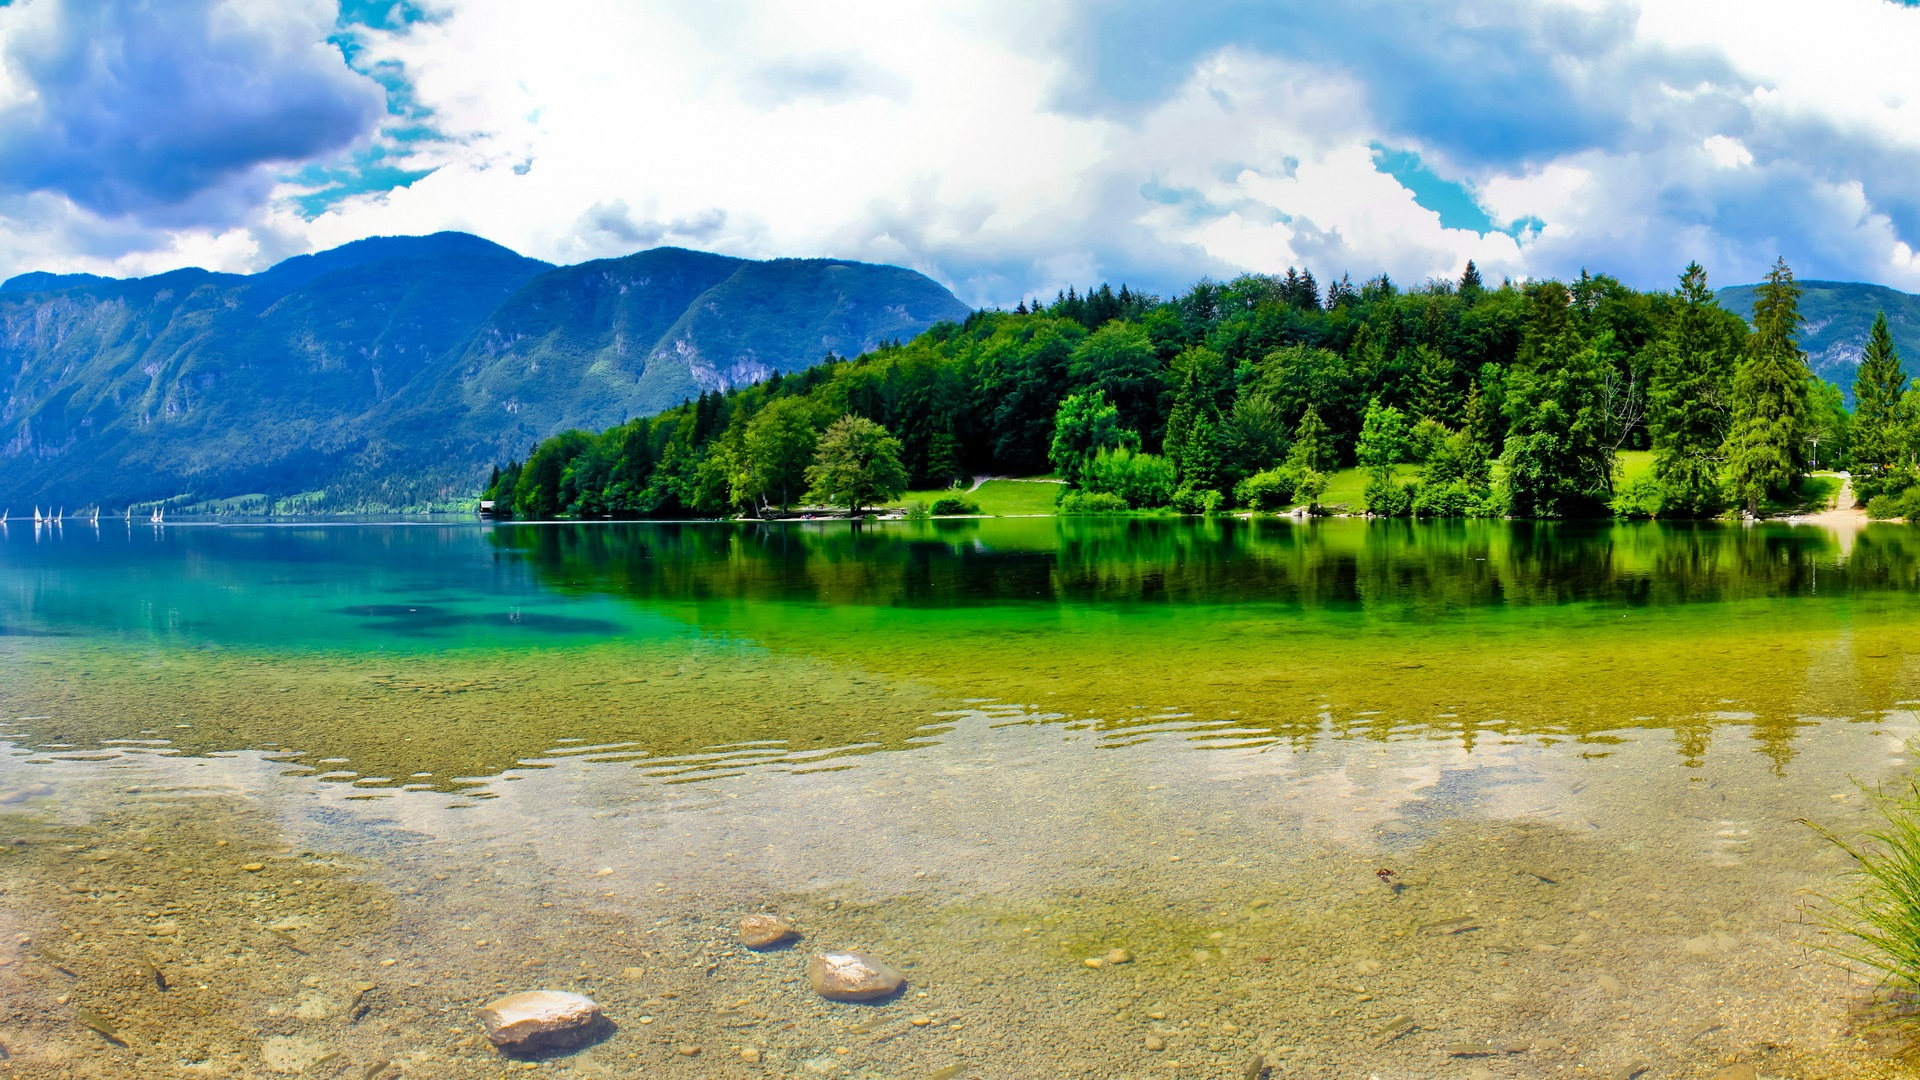 Beautiful 4k Wallpaper 4096 2160: Slowenien, Berge, Sommer, Fluss, Himmel, Wolken, Schöne